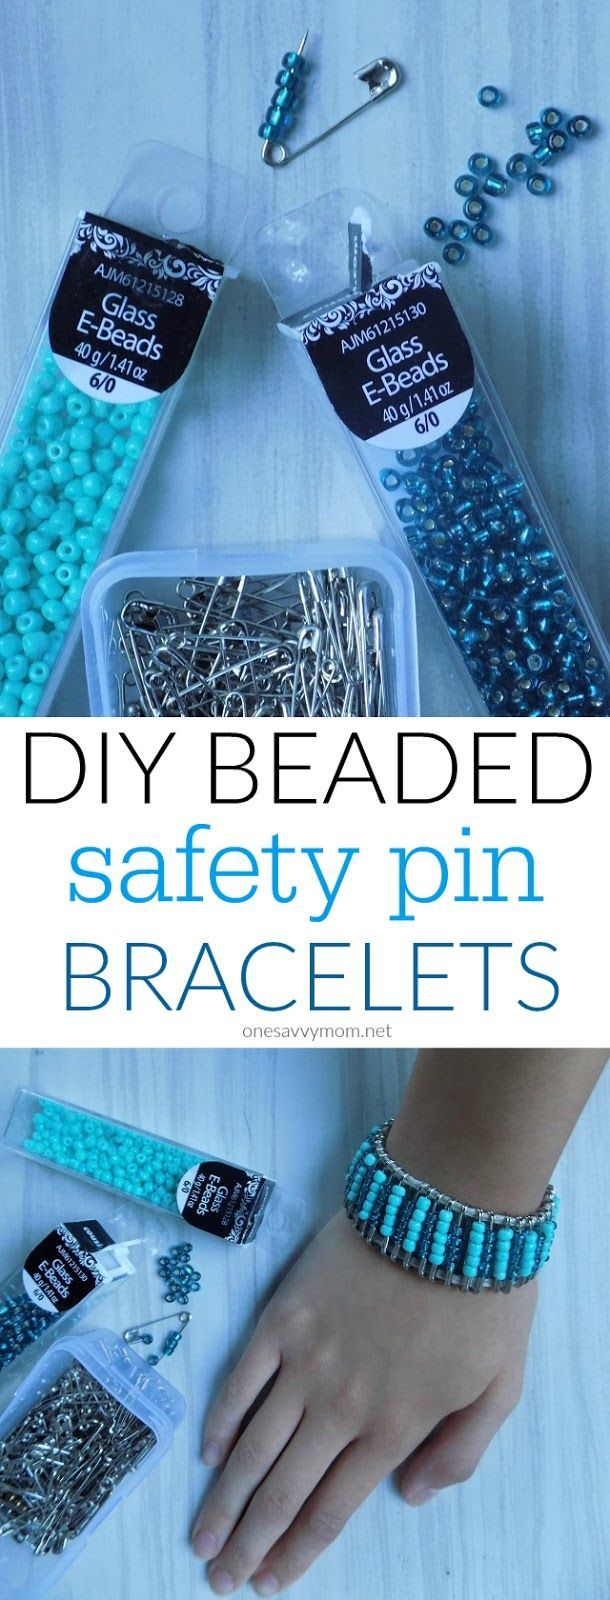 25 unique safety pin art ideas on pinterest safety pins safety diy beaded safety pin bracelets fun tween and teen craft jewelry making idea amipublicfo Gallery